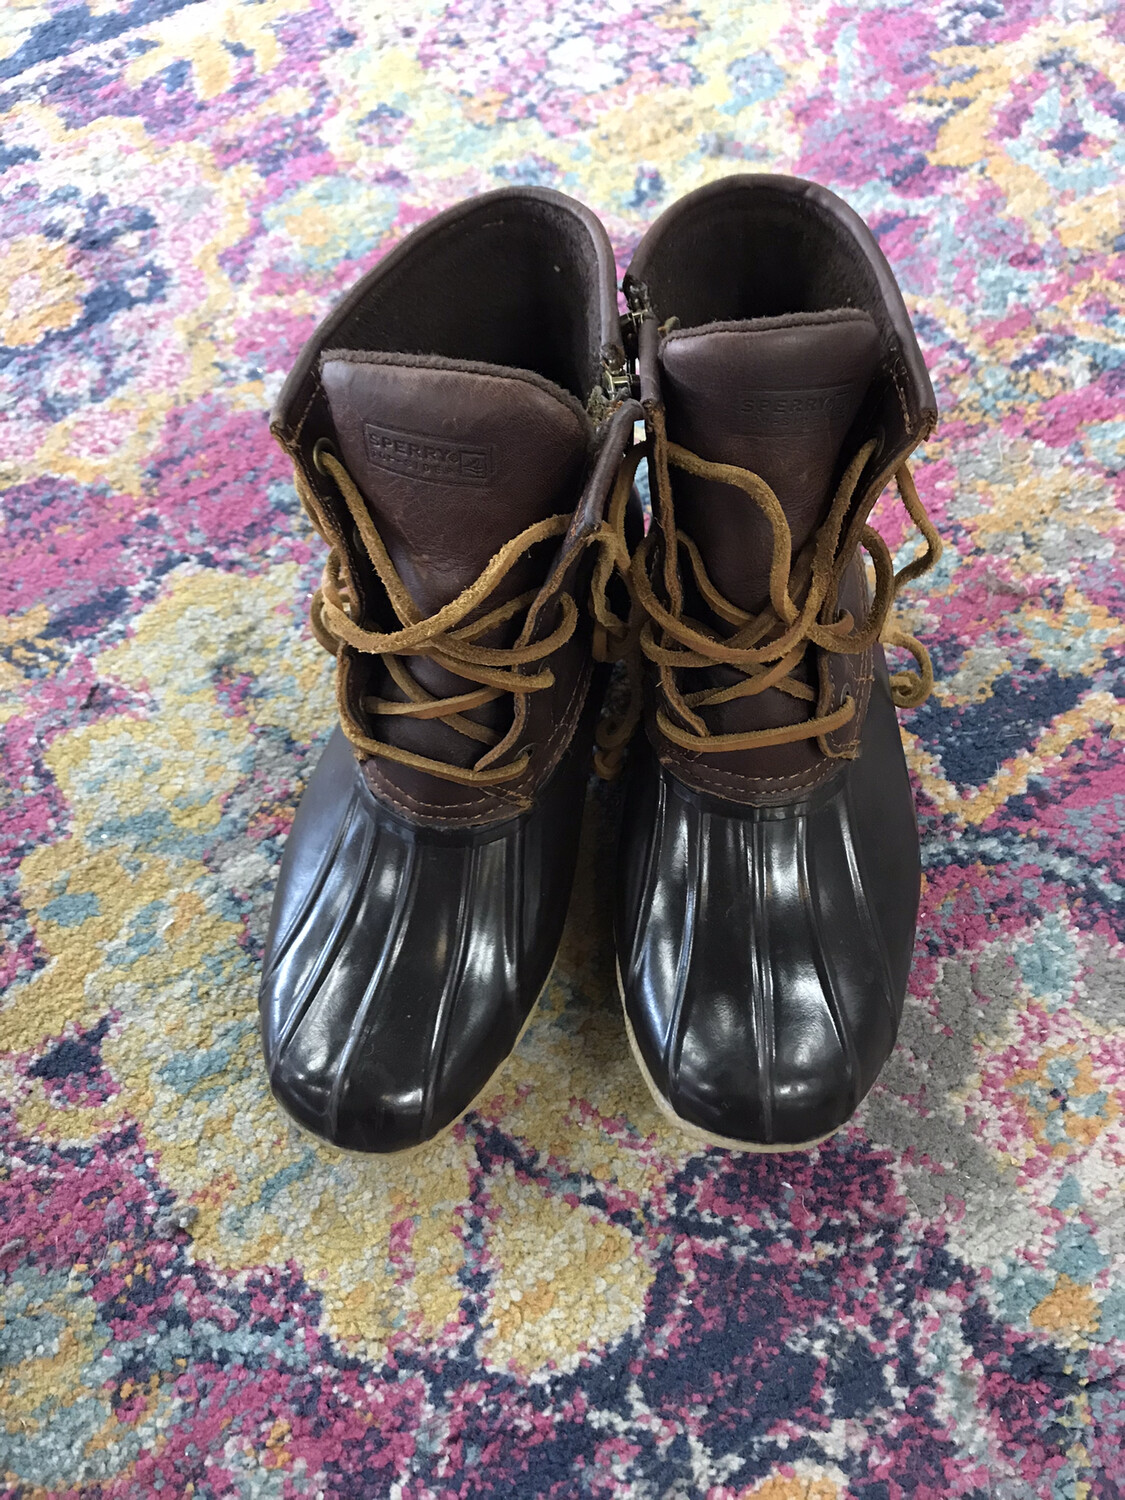 Sperry Duck Boots - Size 6.5